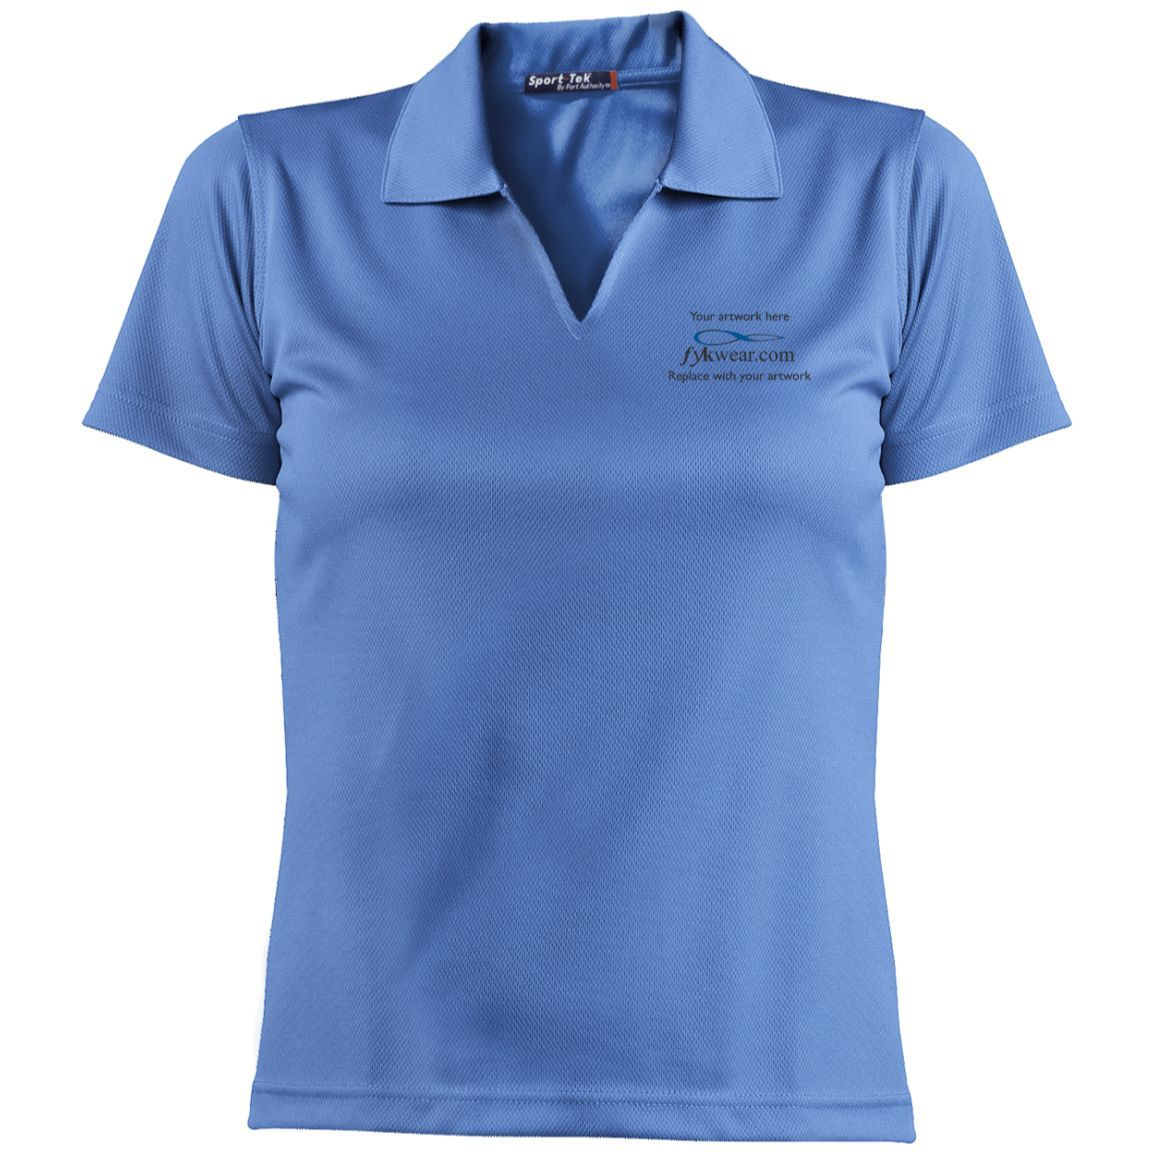 Embroidered Ladies Dri-Mesh Short Sleeve Polos- Contact fykwear for wholesale pricing